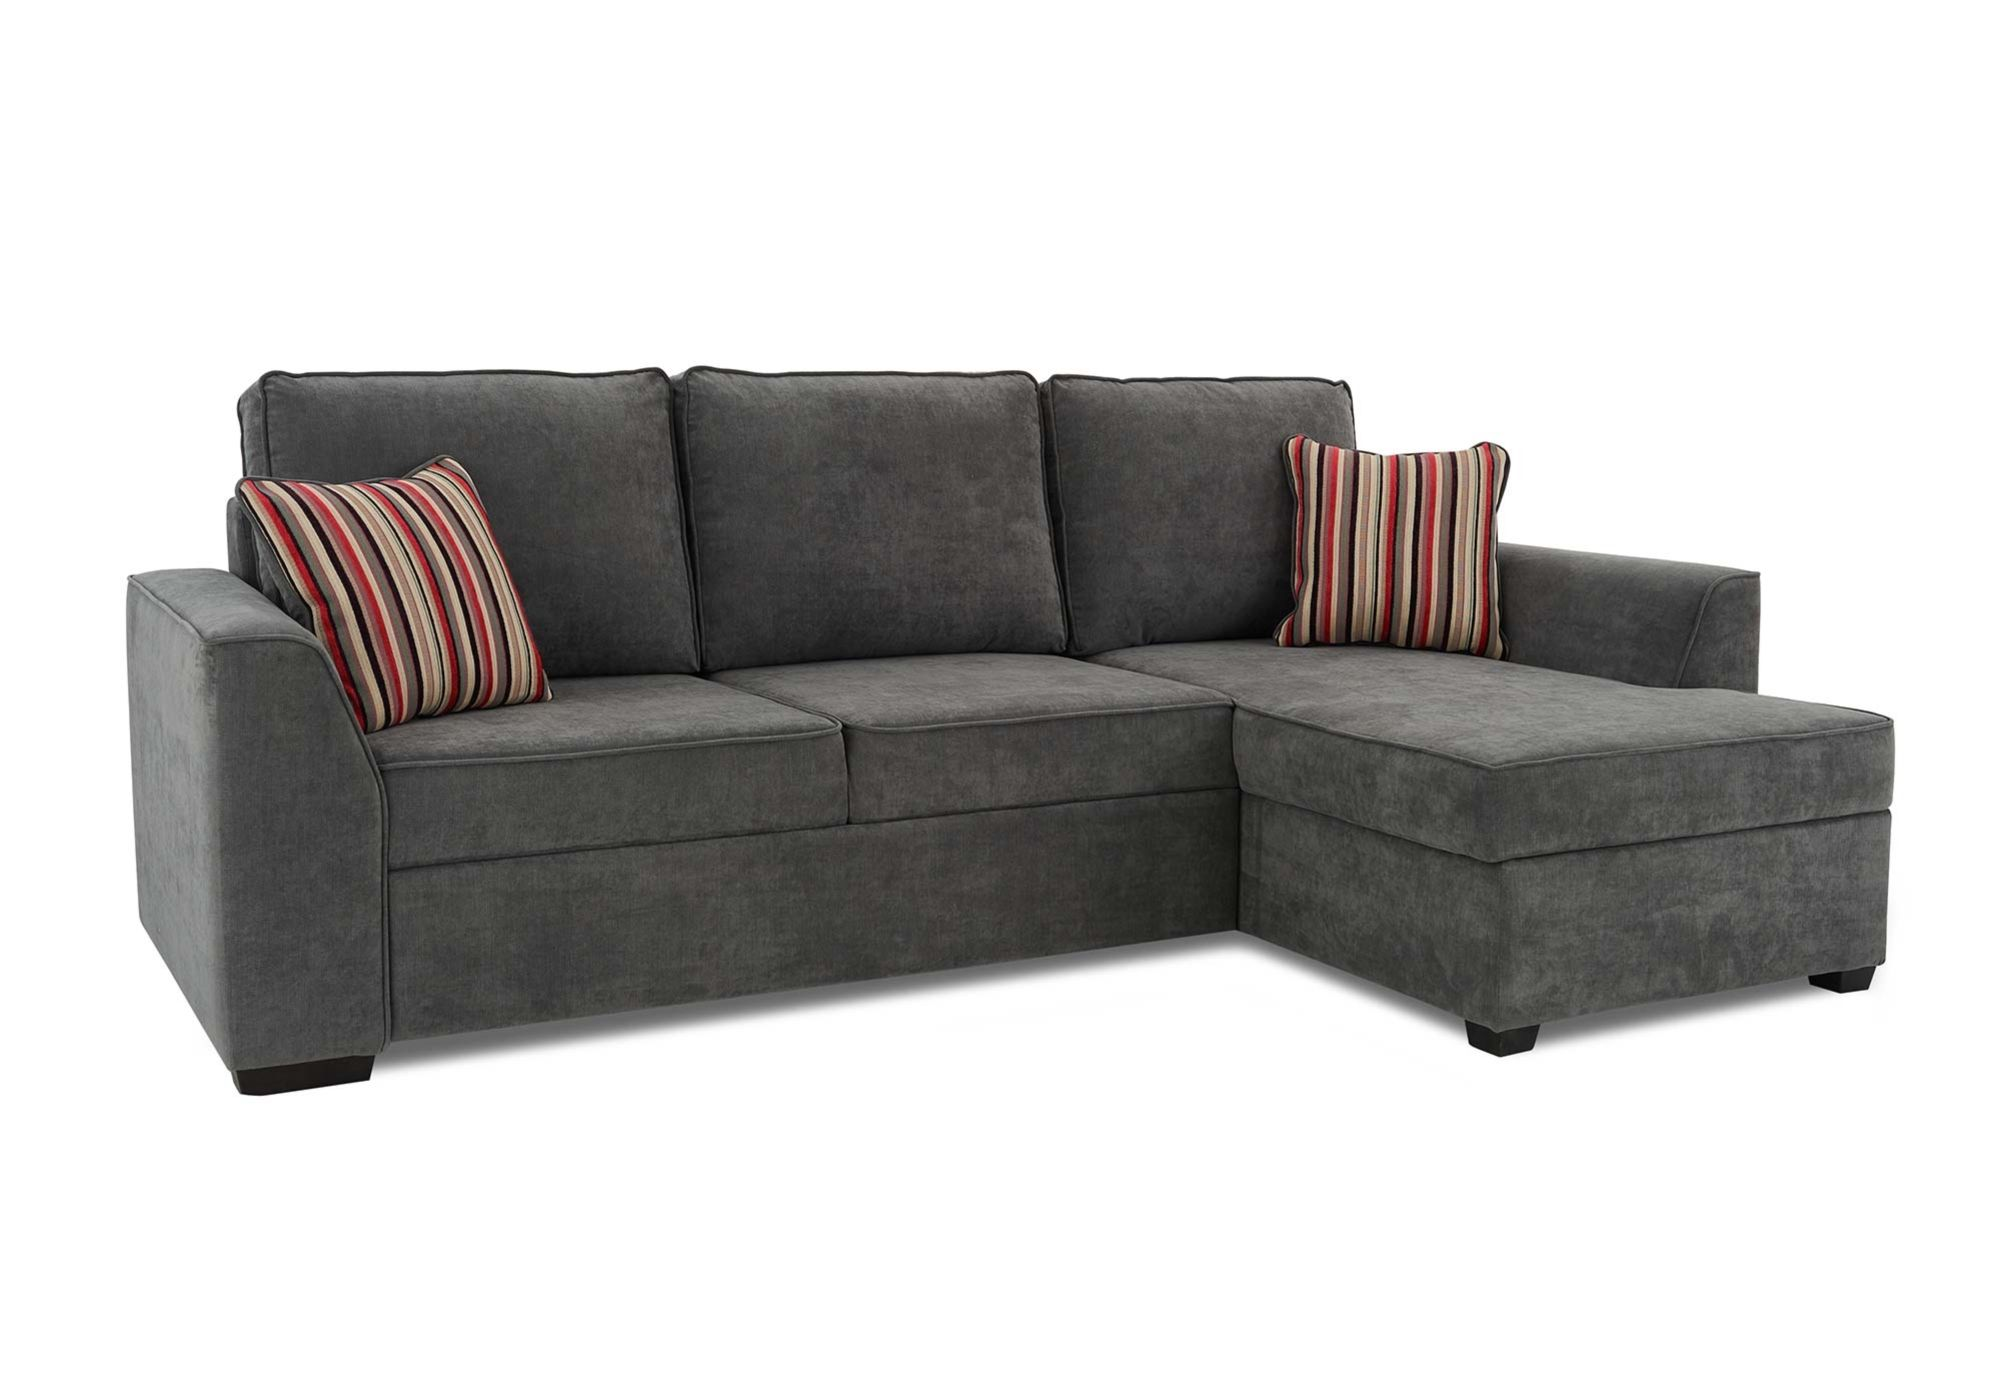 This contemporary chaise end sofa bed is a stylish sofa by day a brilliant bed by night and a spacious storage solution all of the time.  sc 1 st  Pinterest : chaise end sofa bed - Sectionals, Sofas & Couches